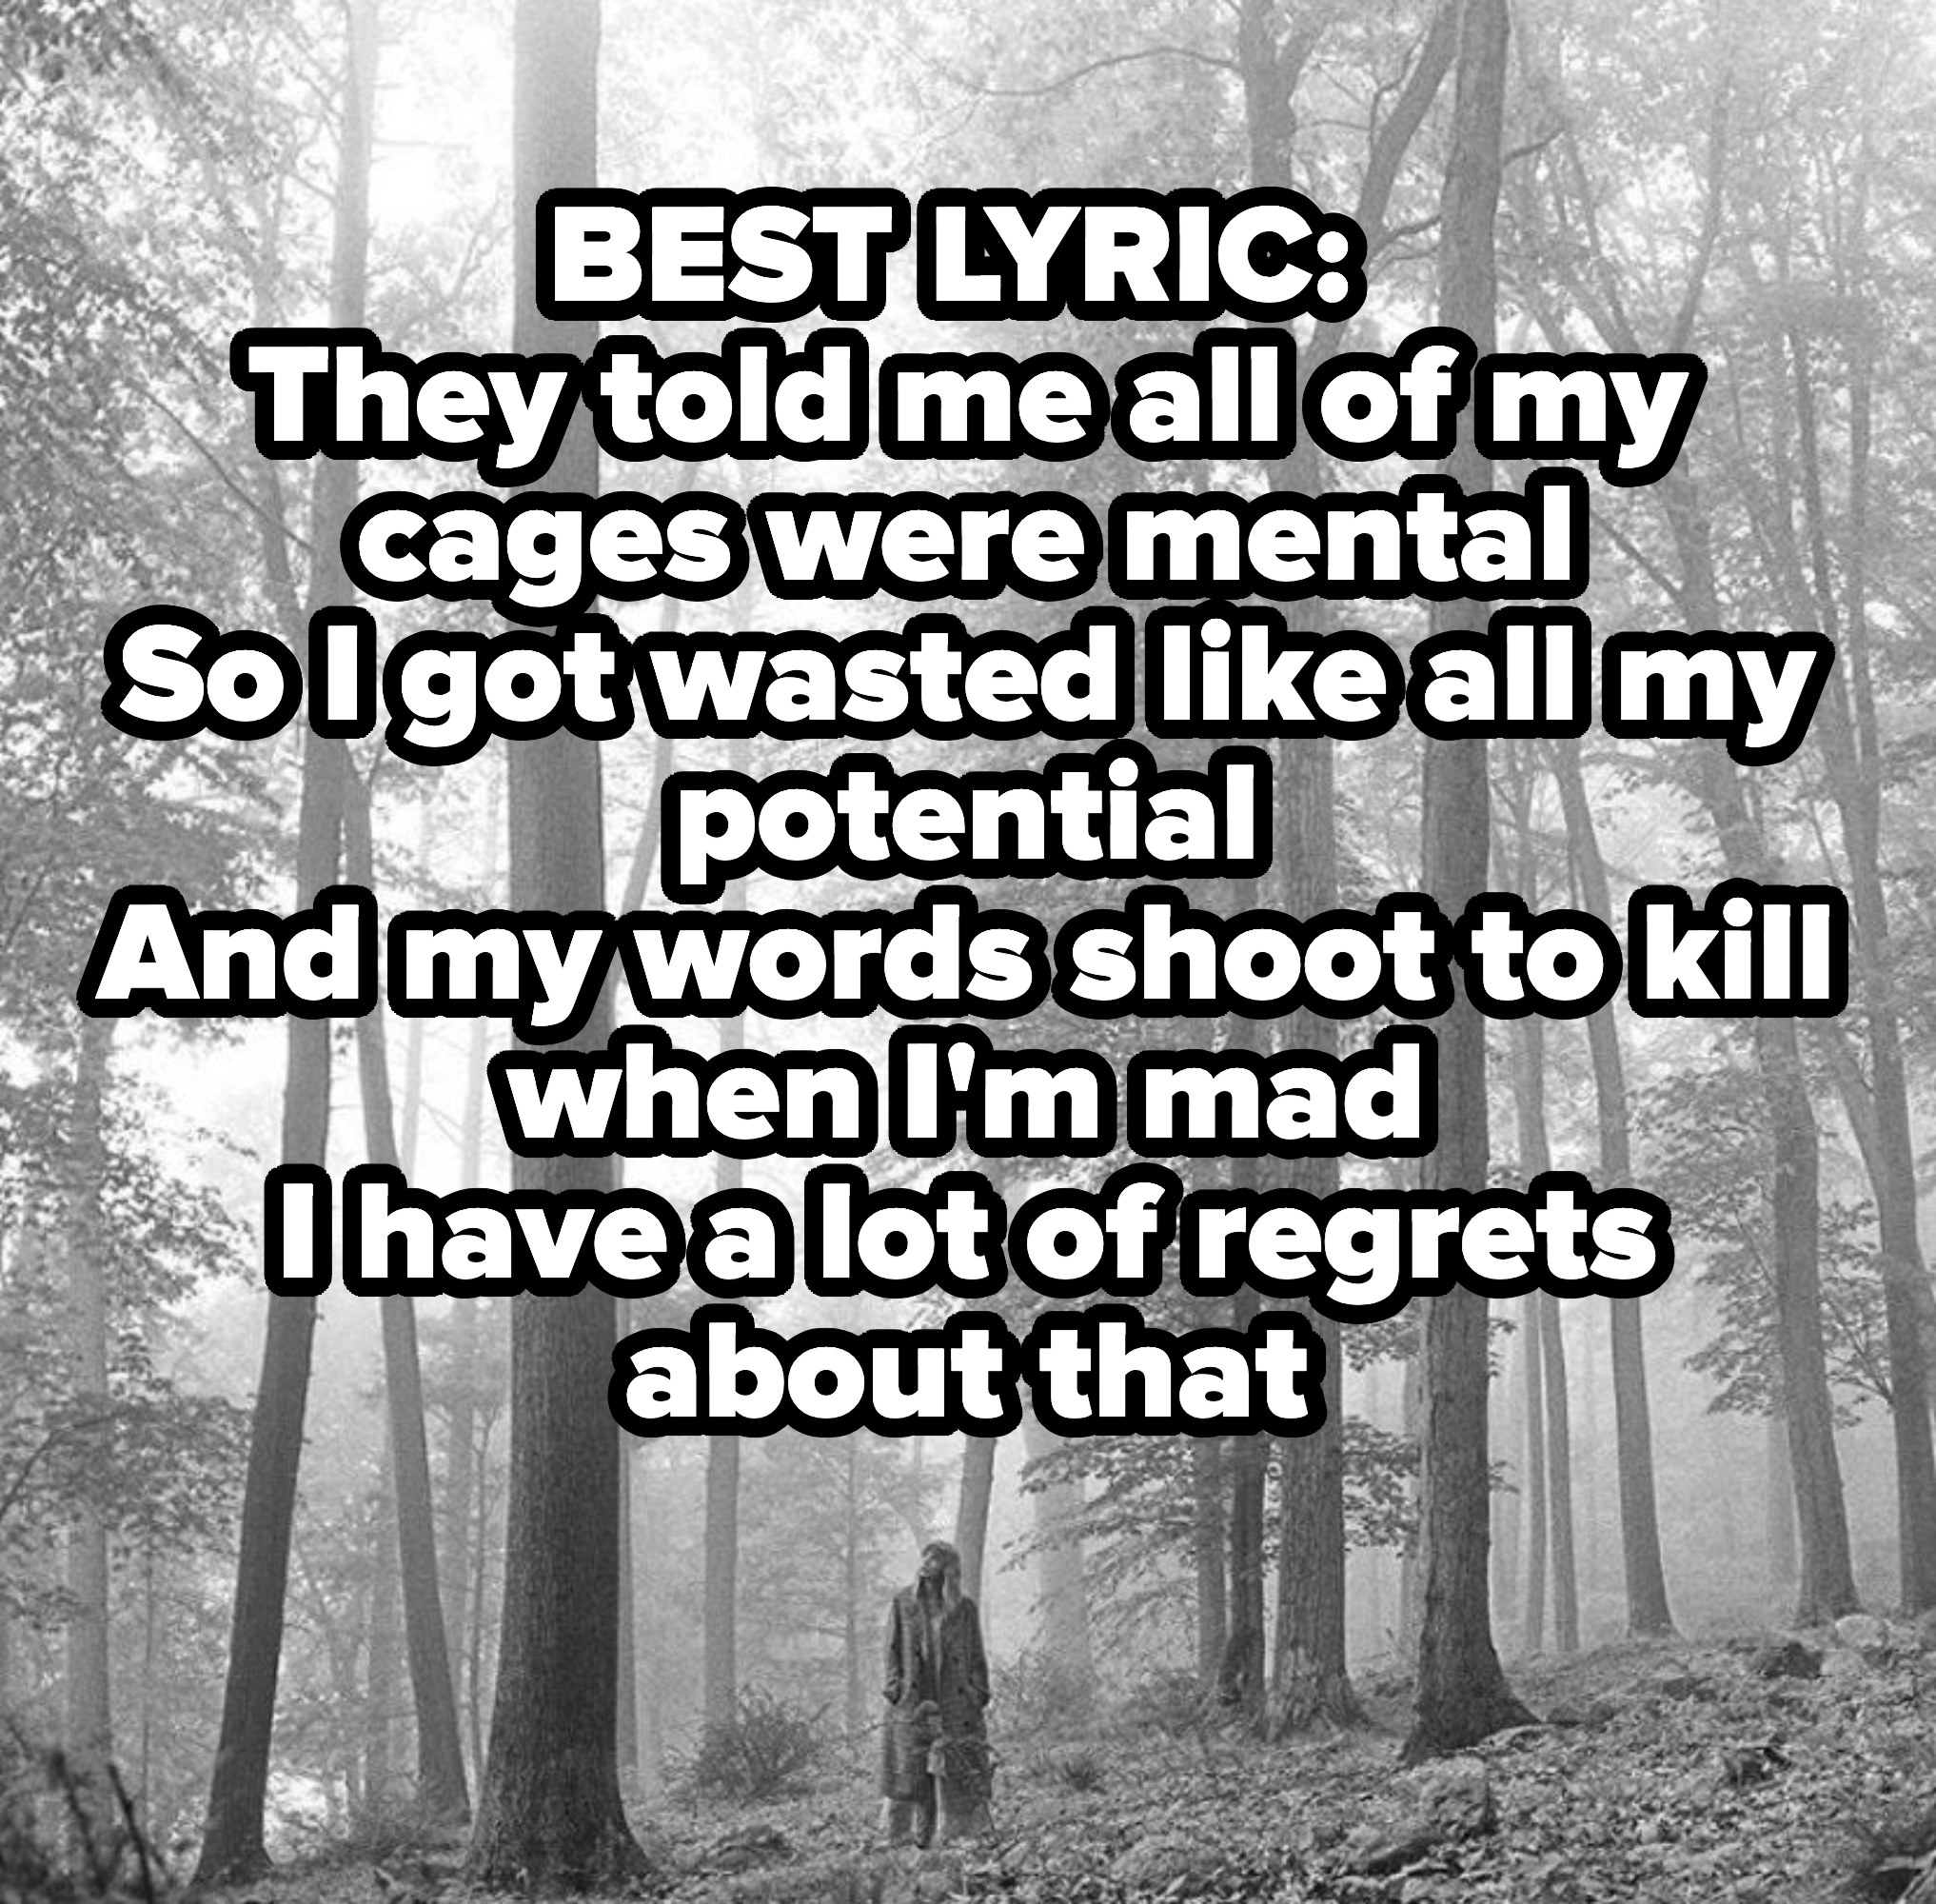 BEST LYRIC: They told me all of my cages were mental So I got wasted like all my potential And my words shoot to kill when I'm mad I have a lot of regrets about that